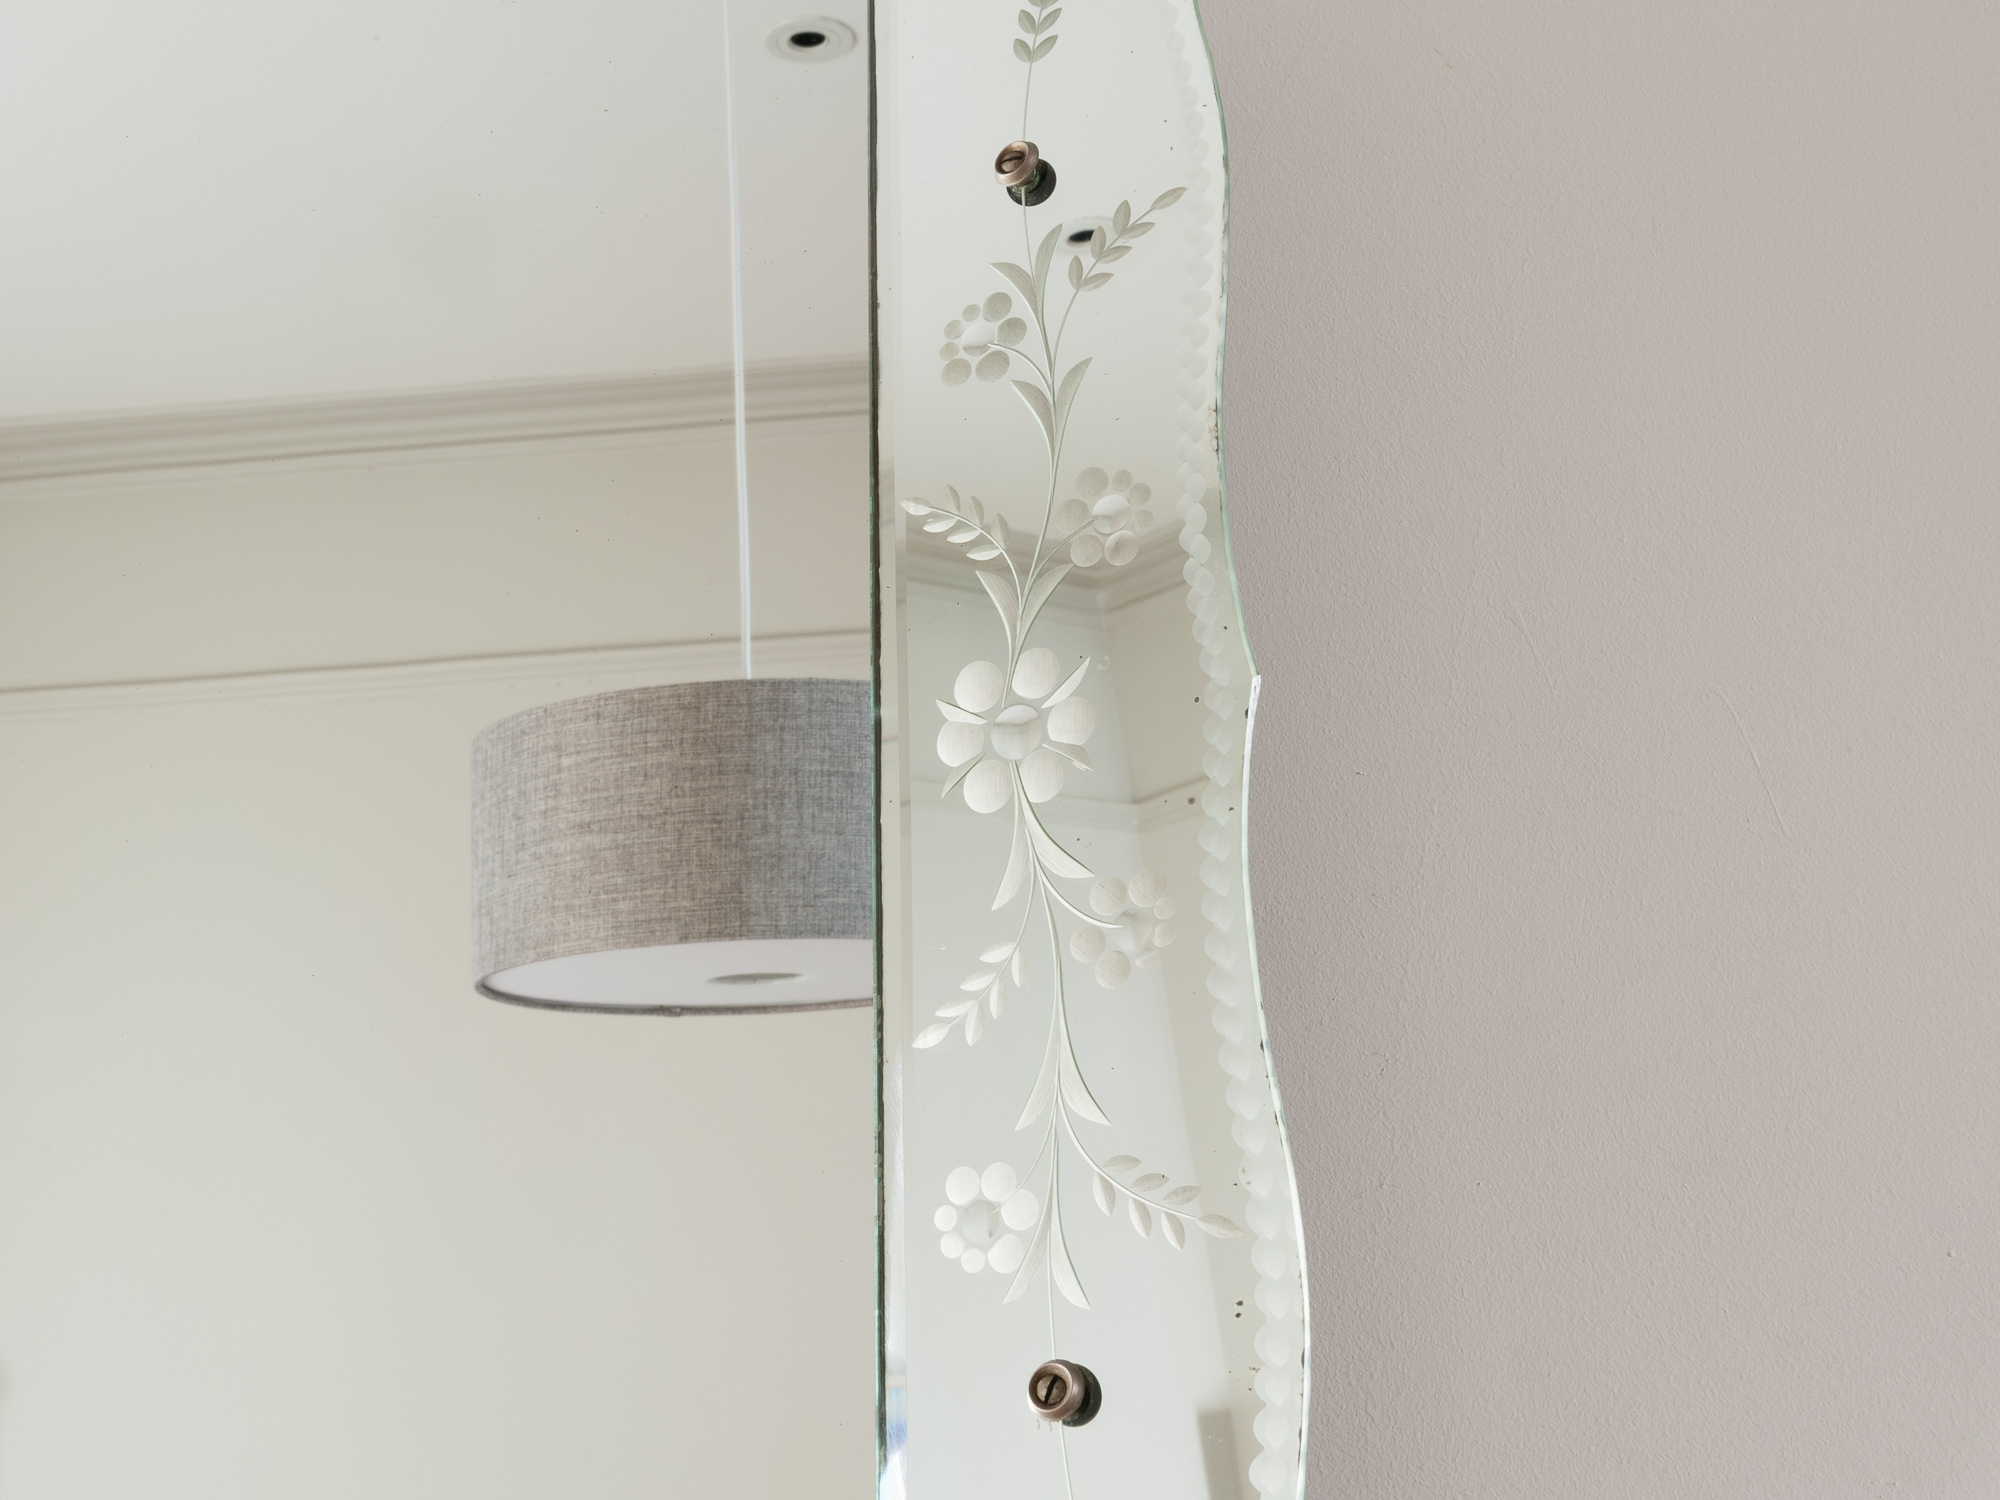 Vintage French Bevelled Edge Mirror Retro Living London Uk Regarding Bevelled Edge Mirrors (View 10 of 15)